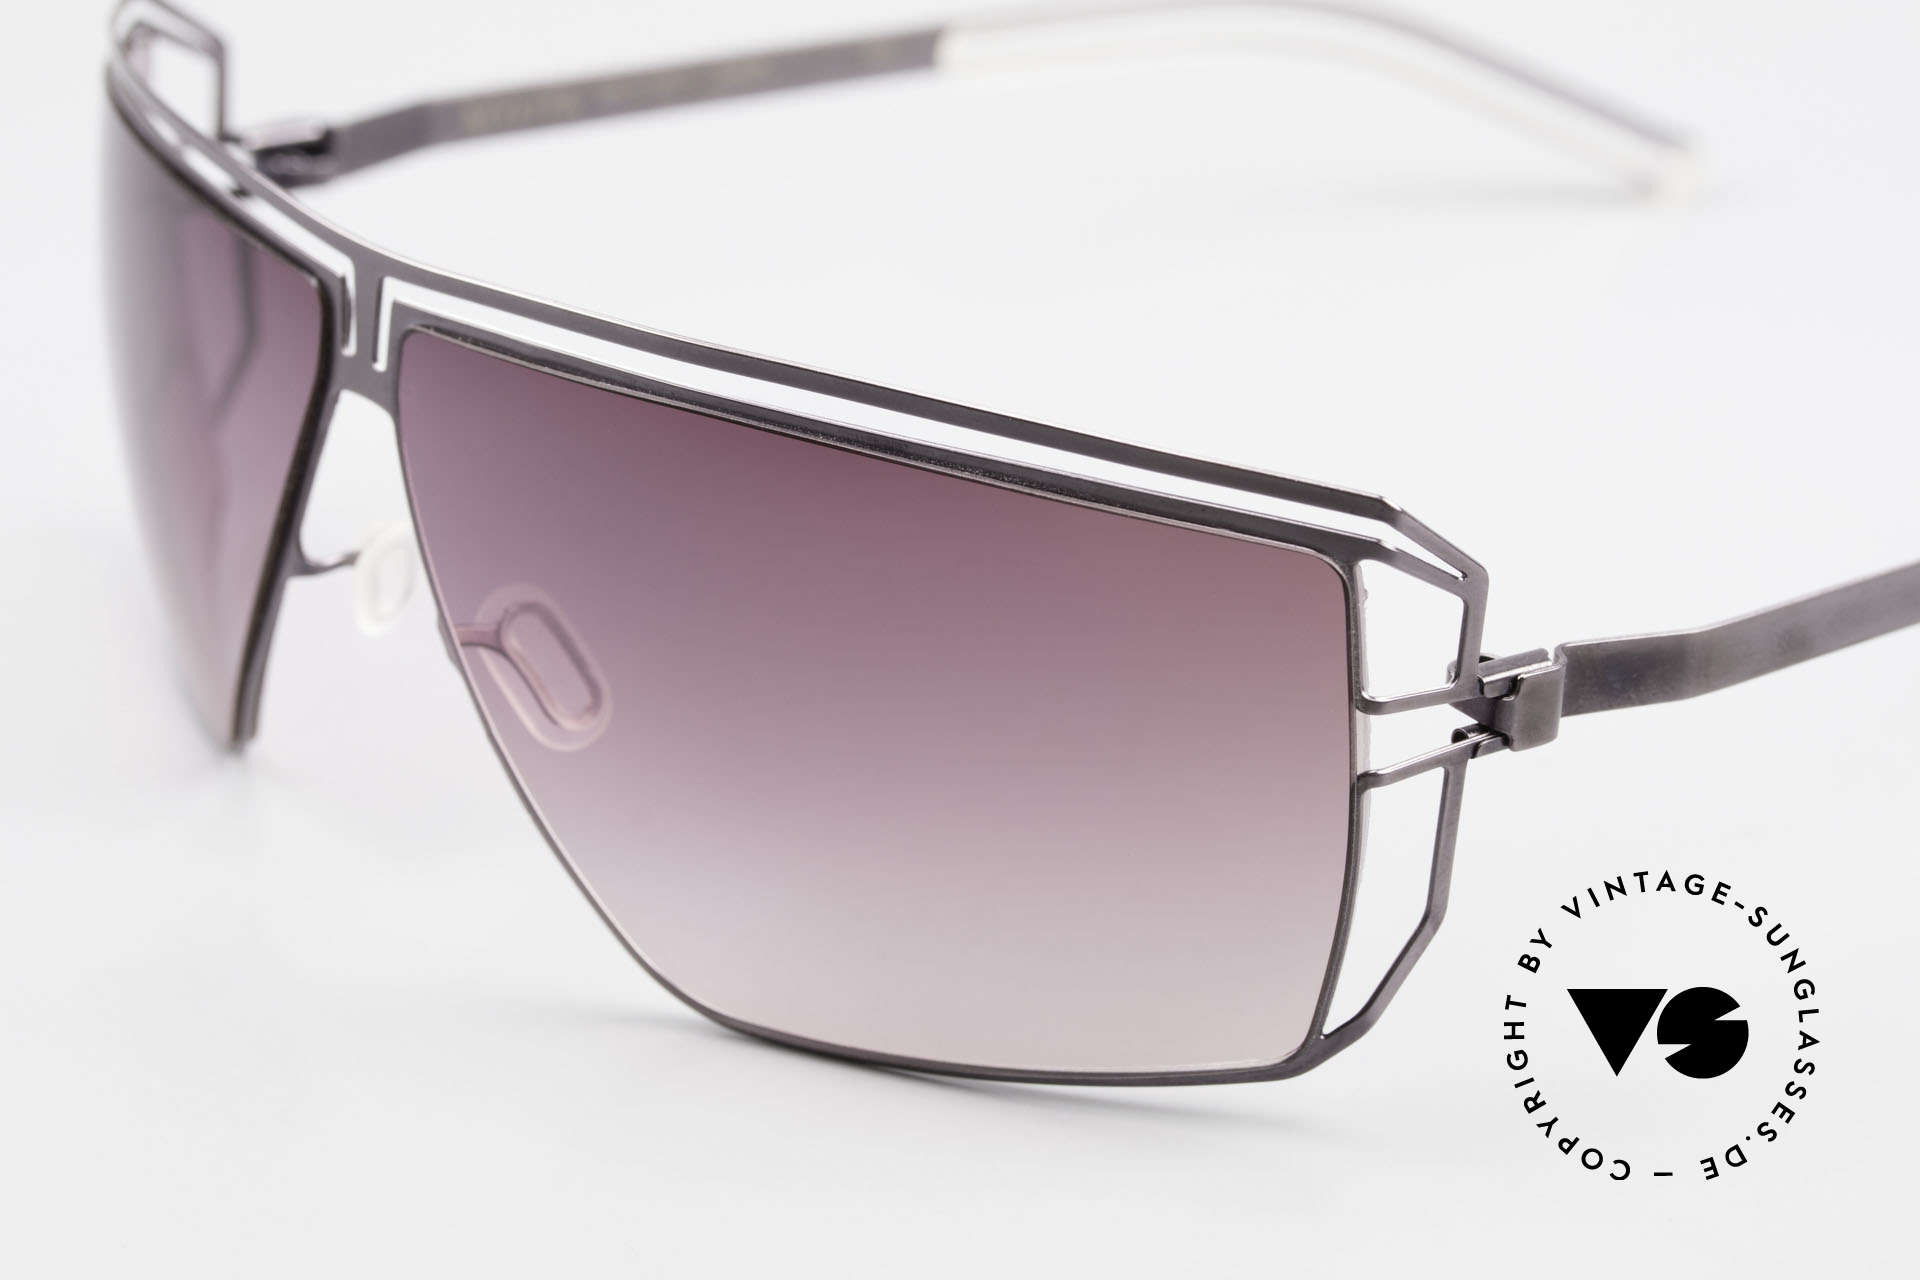 Mykita Anais Designer Sunglasses From 2007, innovative and flexible metal frame = One size fits all!, Made for Women